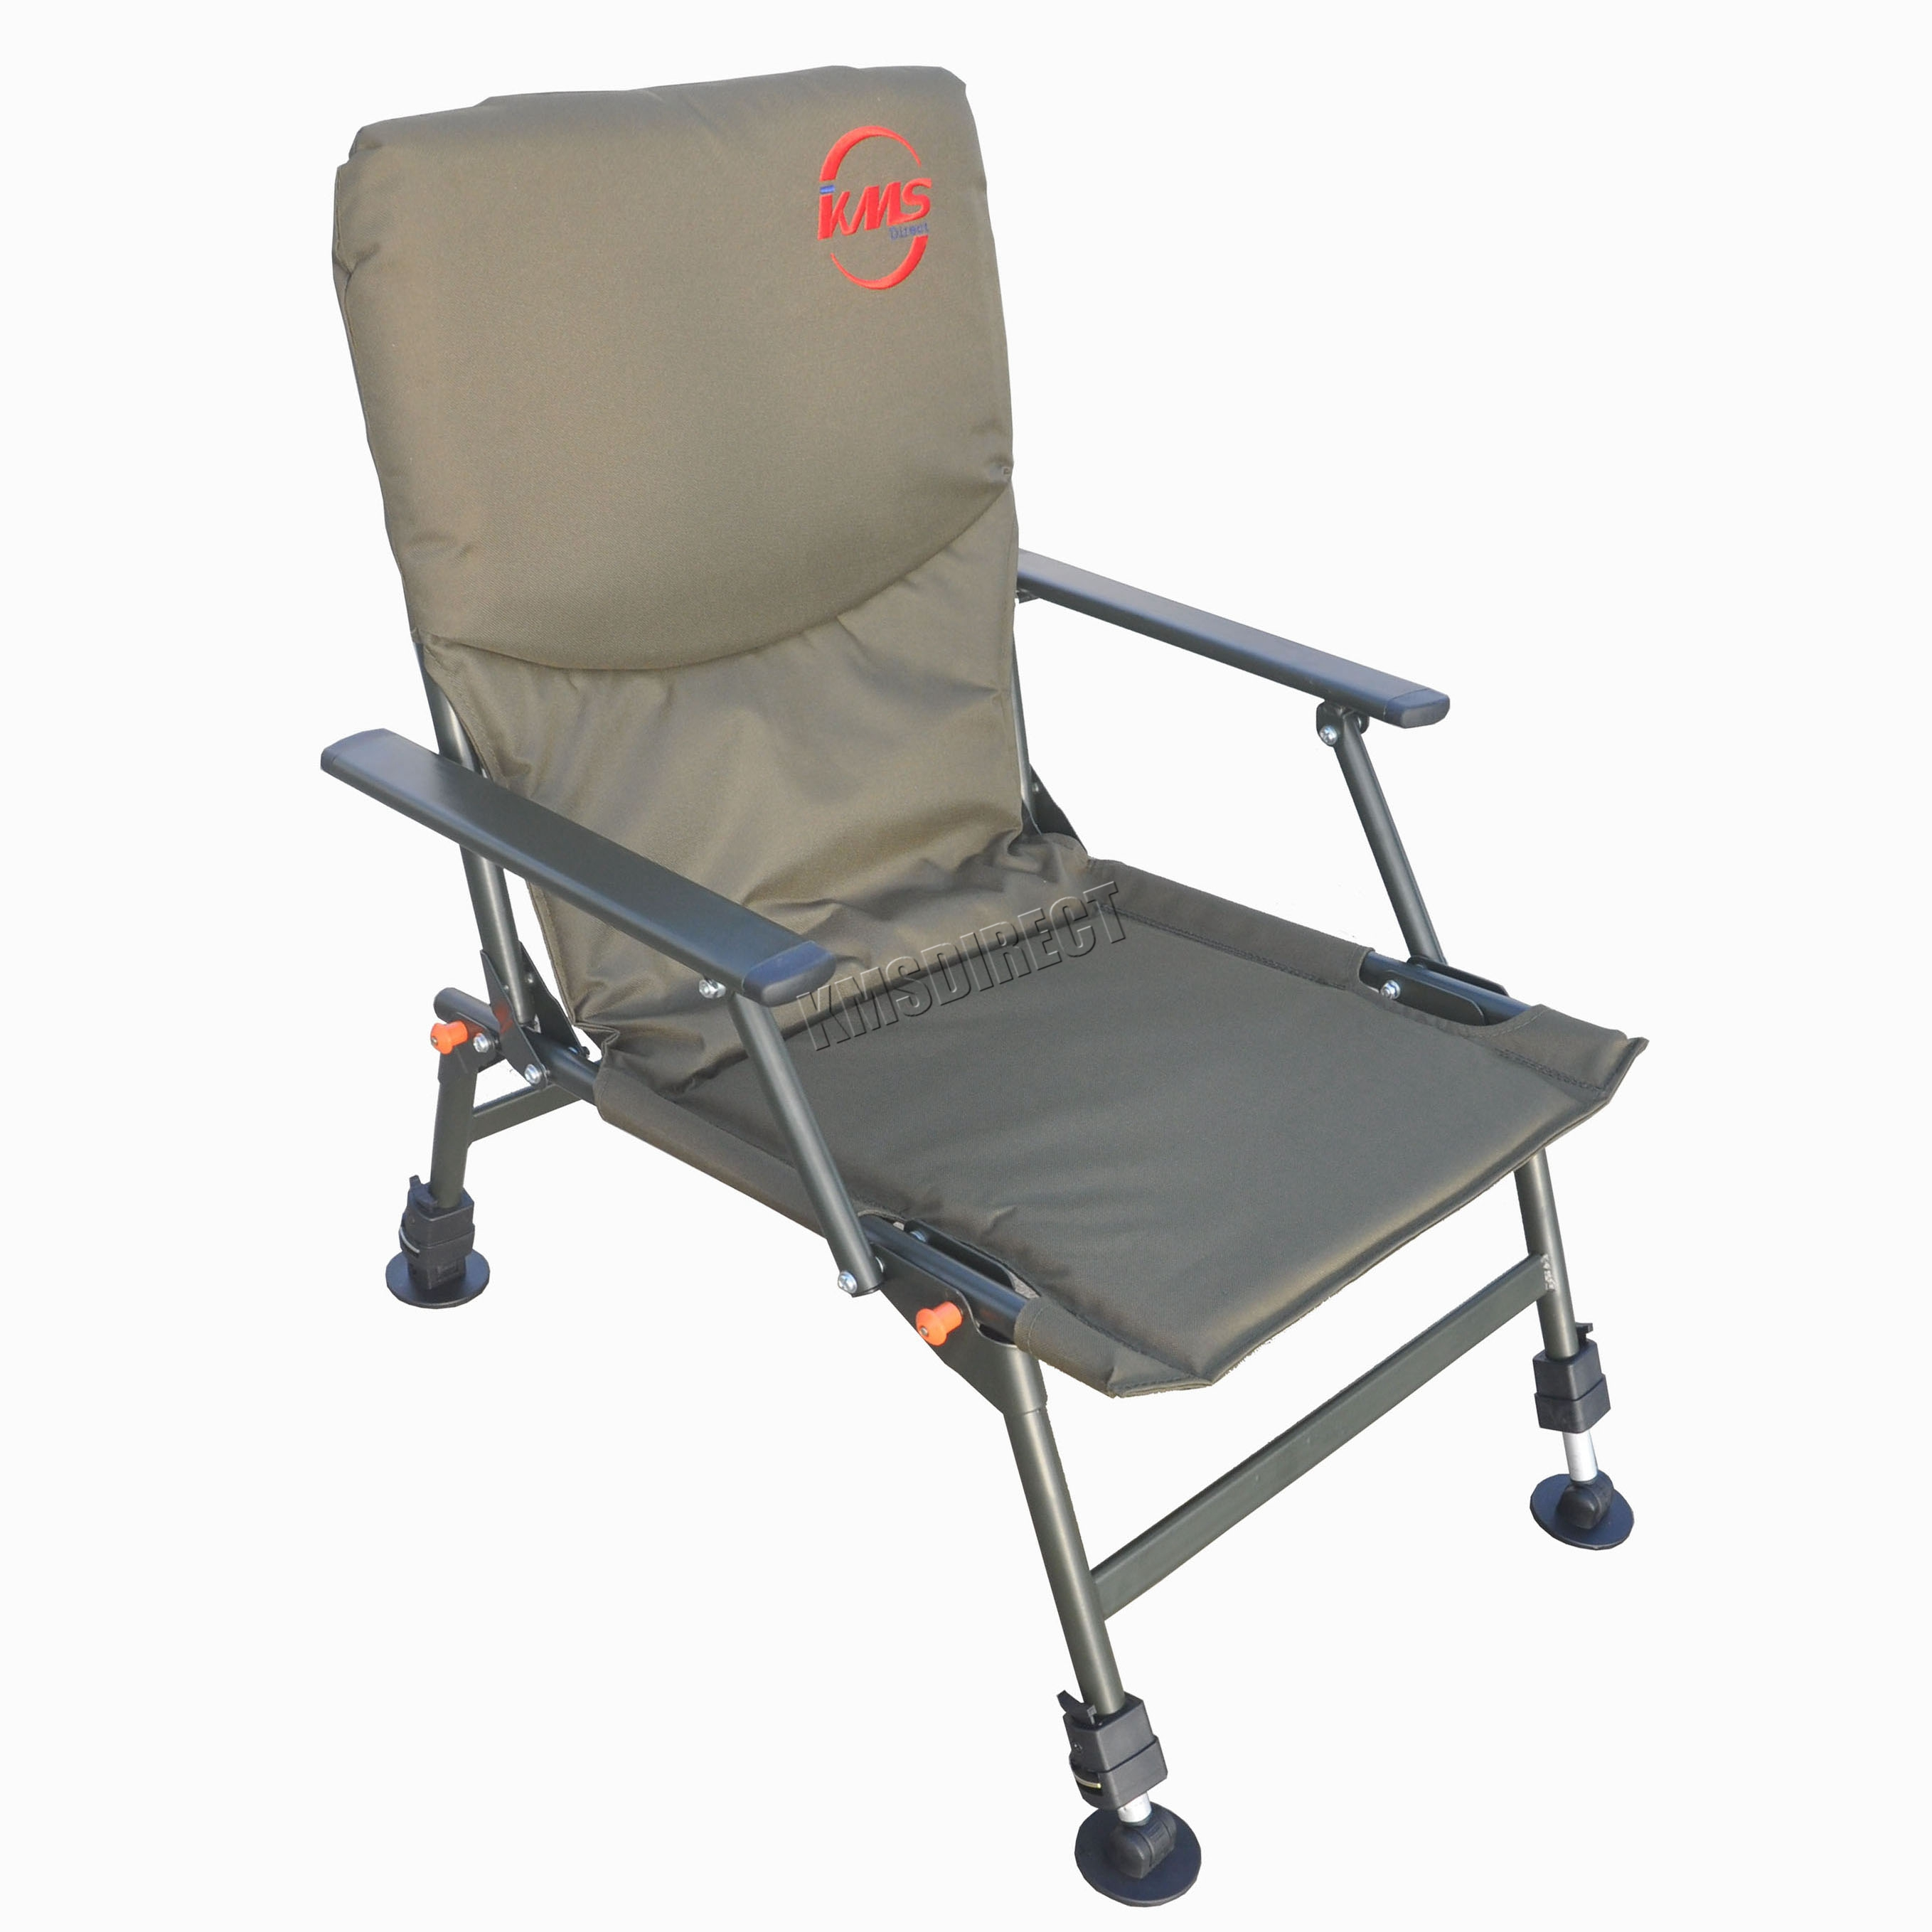 Portable Folding Carp Fishing Chair Camping Heavy Duty 4 Adjustable Legs Fc 053 Ebay